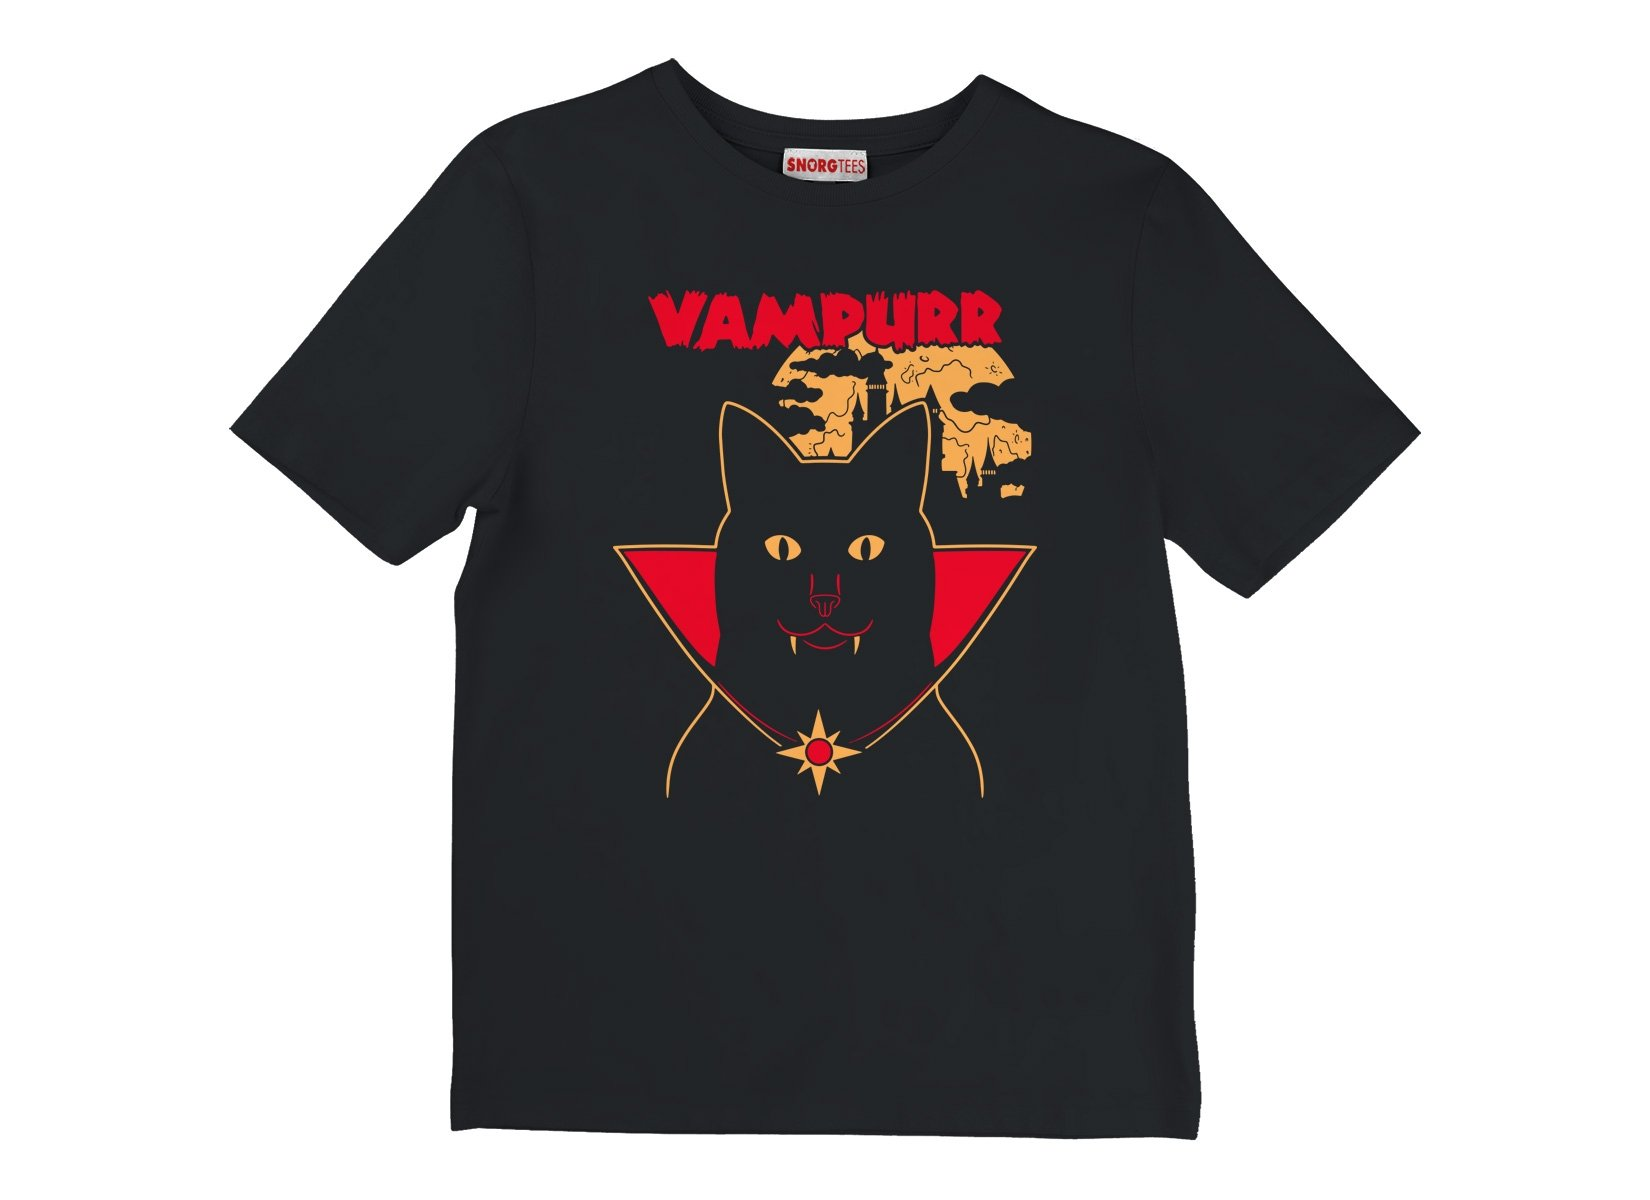 Vampurr on Kids T-Shirt